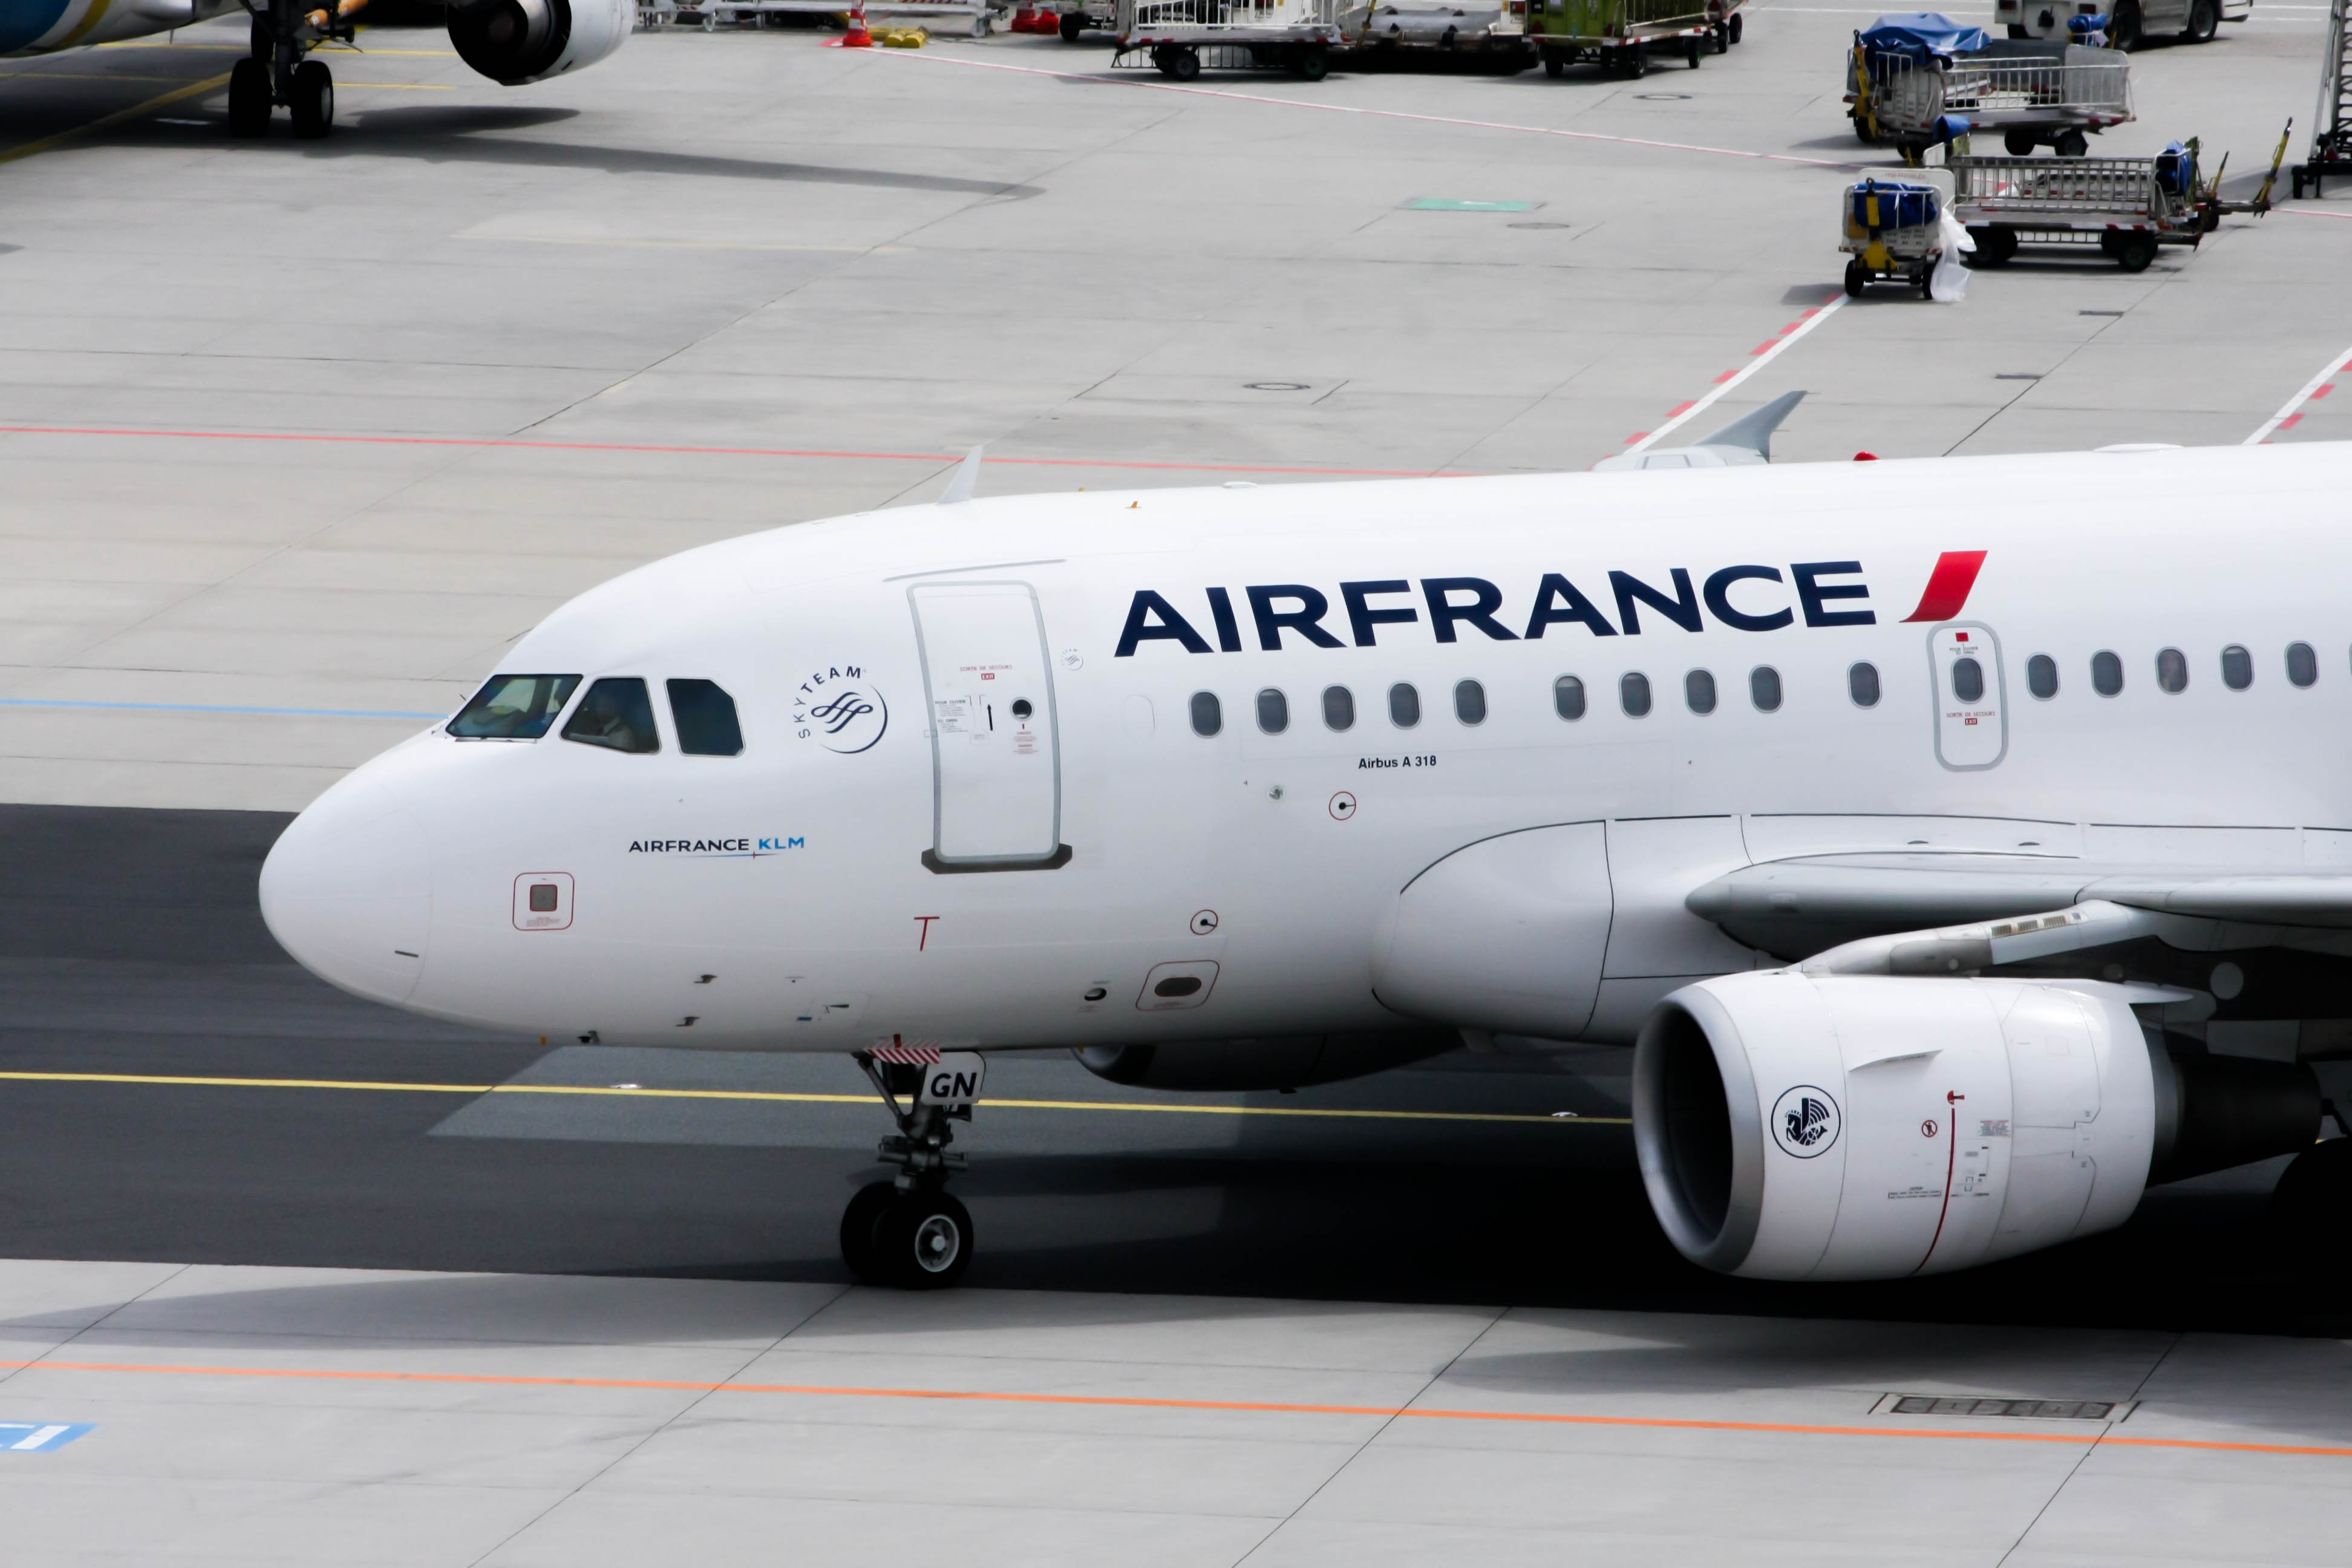 file air france airbus a318 111 f gugn jpg wikimedia commons rh commons wikimedia org Airbus A380 Airbus A350